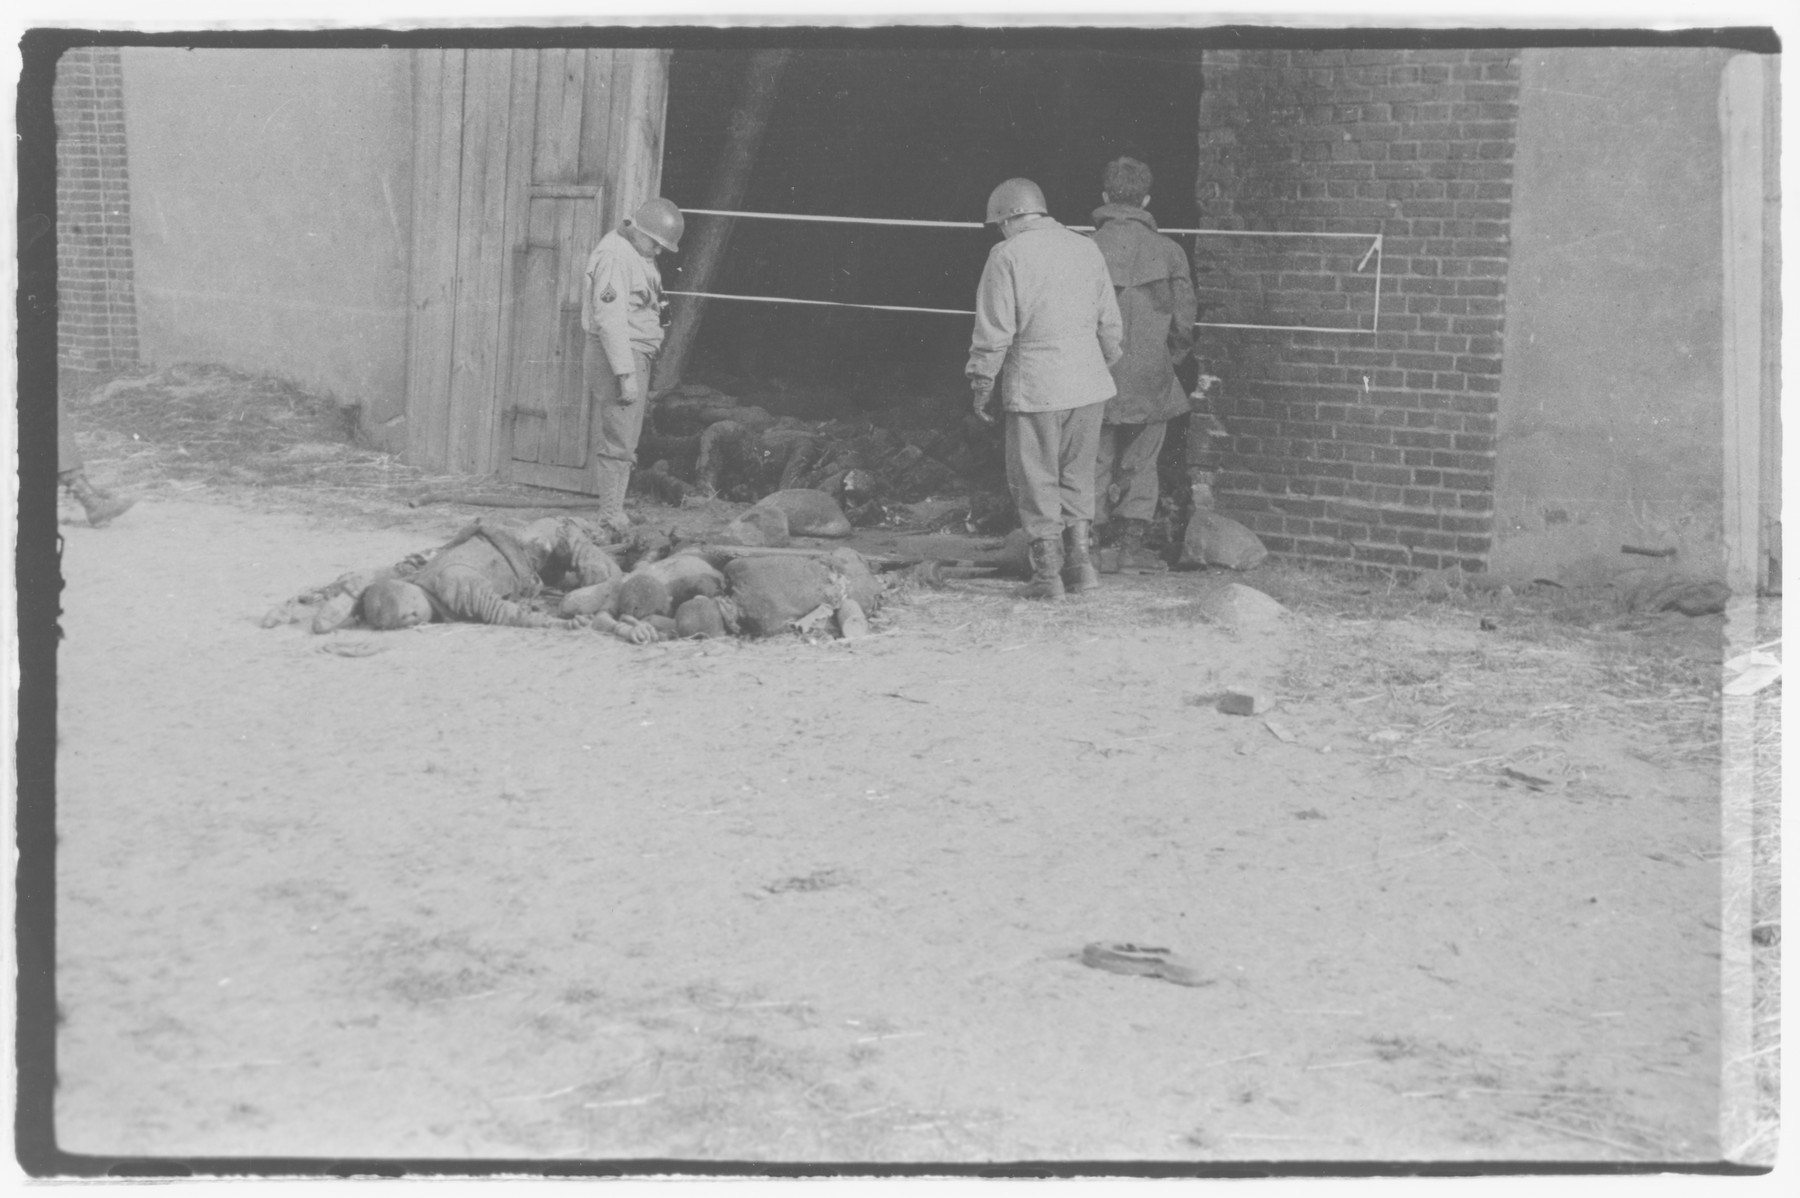 US Army officers from the 91st Evacuation Hospital Unit investigate the aftermath of the Gardelegen Atrocity.